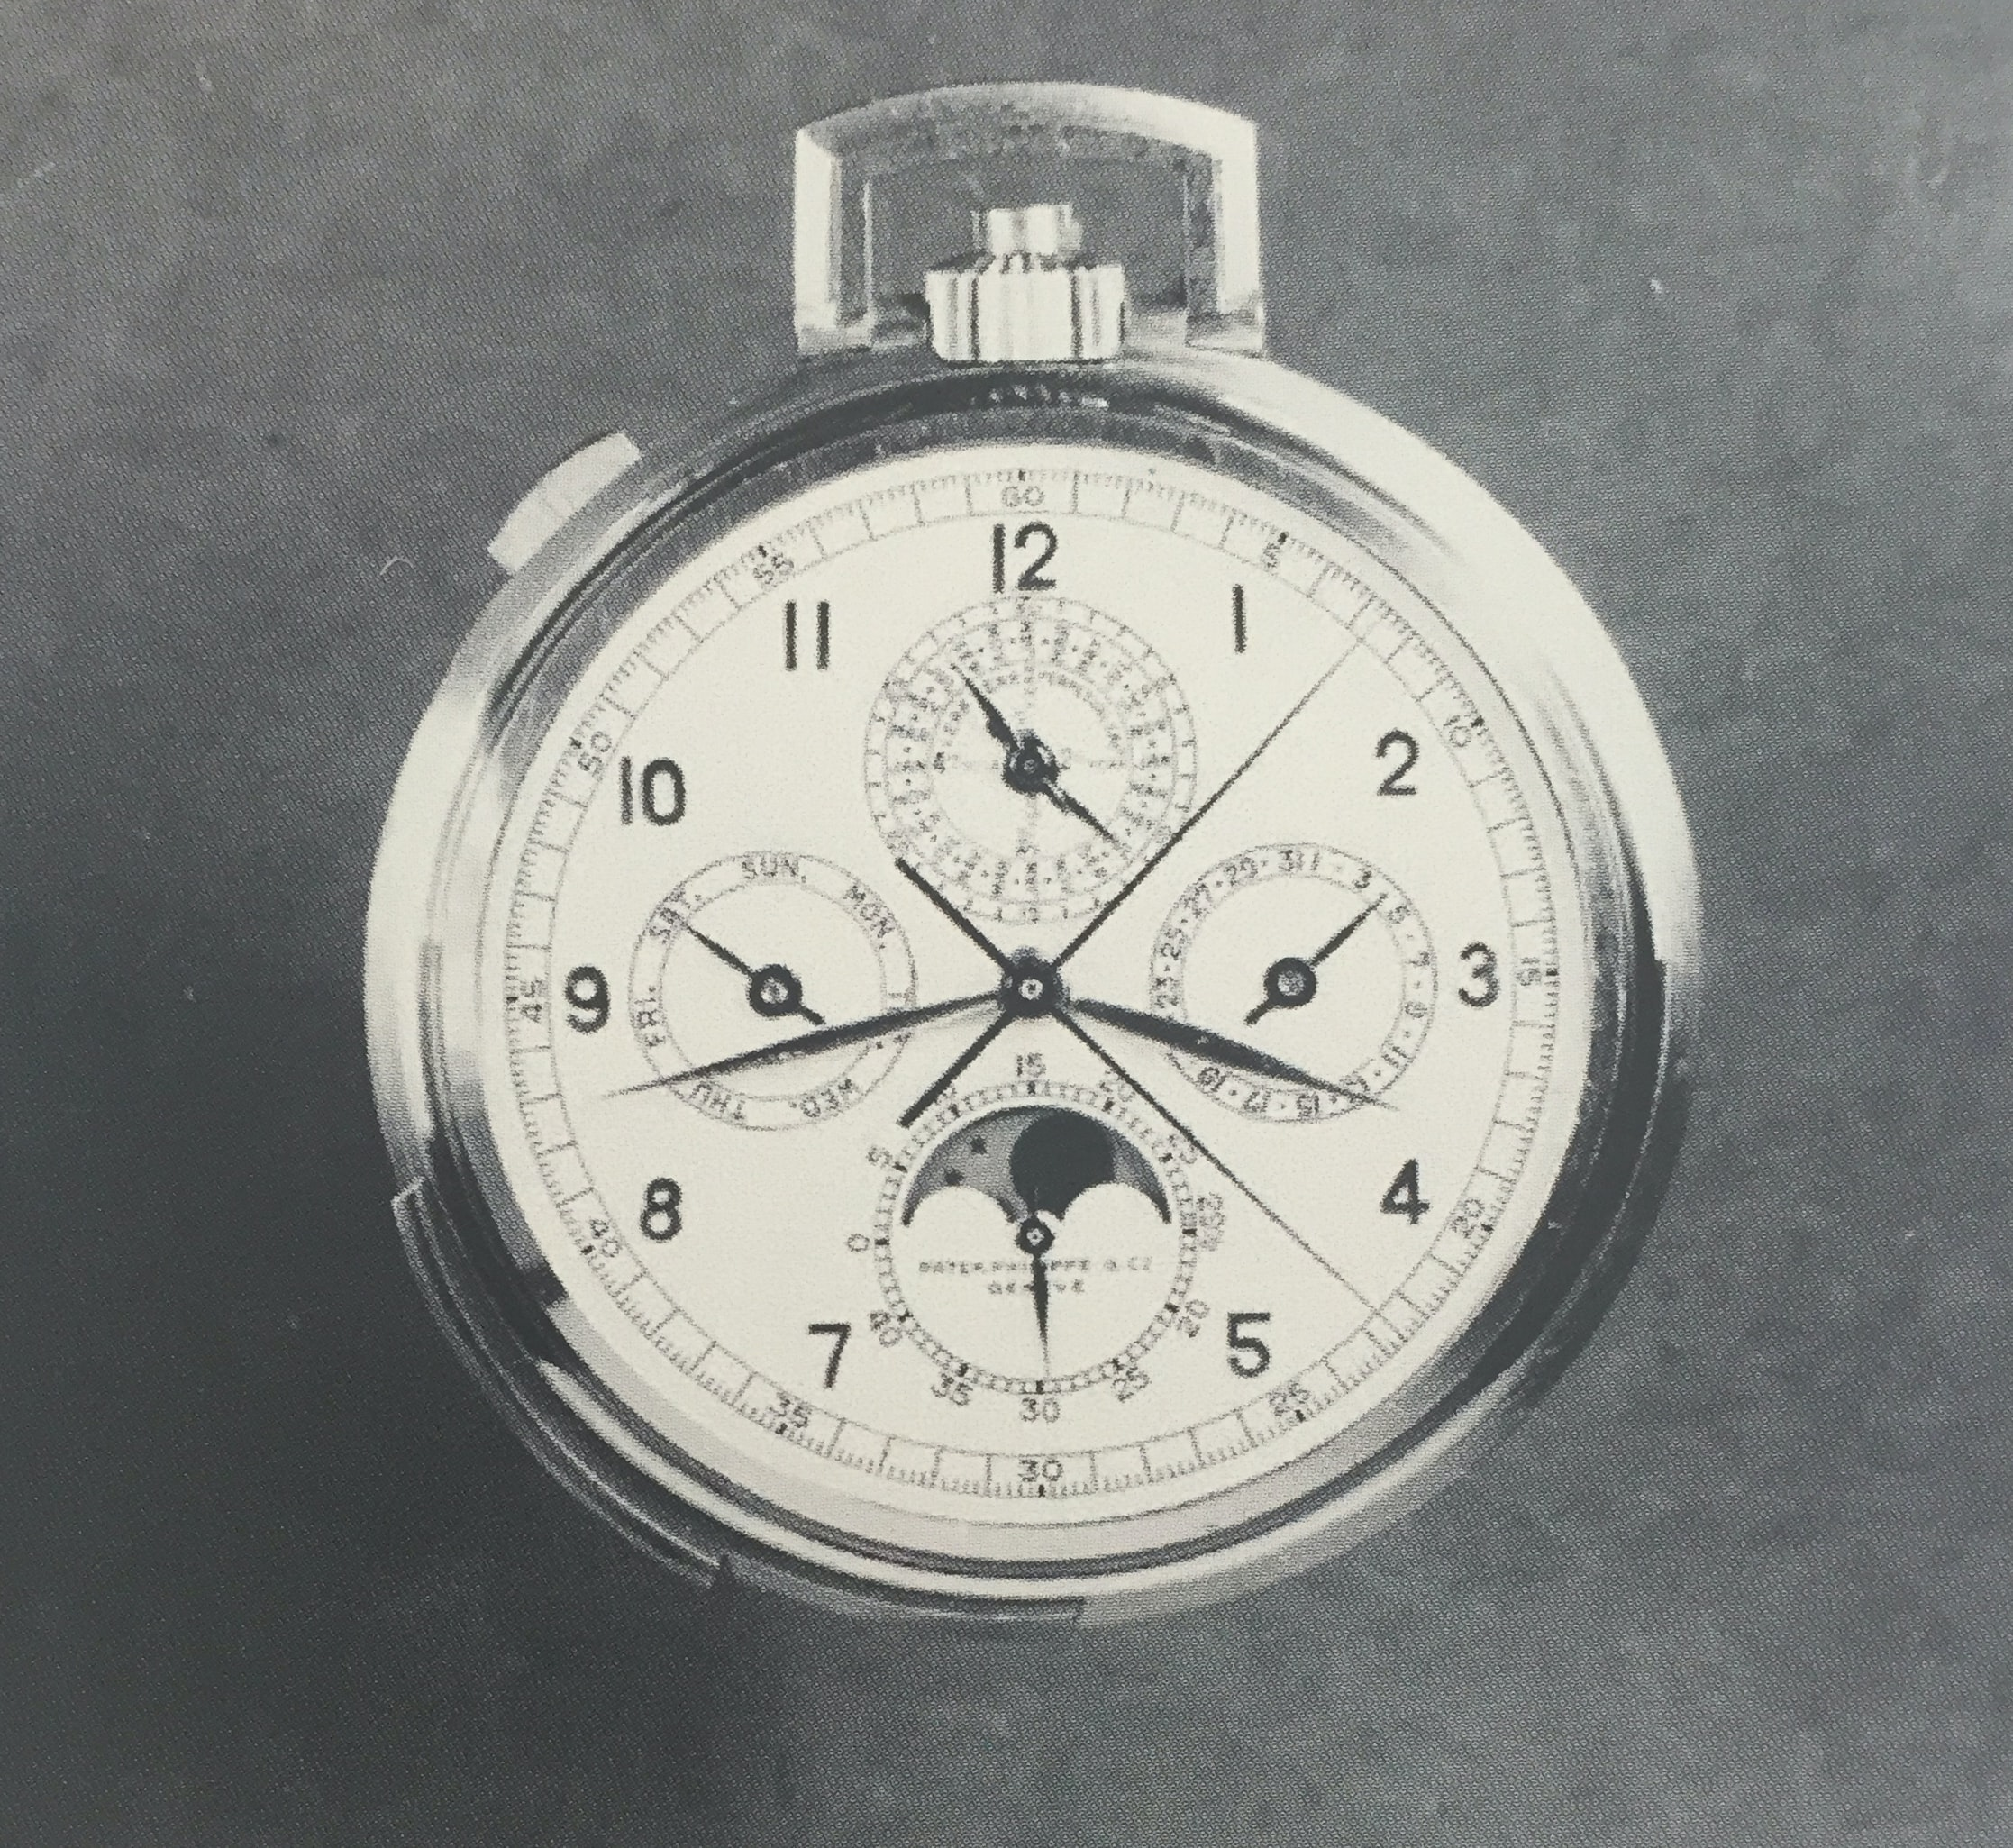 Found: The Dalai Lama's Patek Philippe, Gifted By FDR Via An OSS Officer Who Was The Grandson Of Leo Tolstoy (Seriously) Found: The Dalai Lama's Patek Philippe, Gifted By FDR Via An OSS Officer Who Was The Grandson Of Leo Tolstoy (Seriously) Patek Philippe reference 658 Archive Image